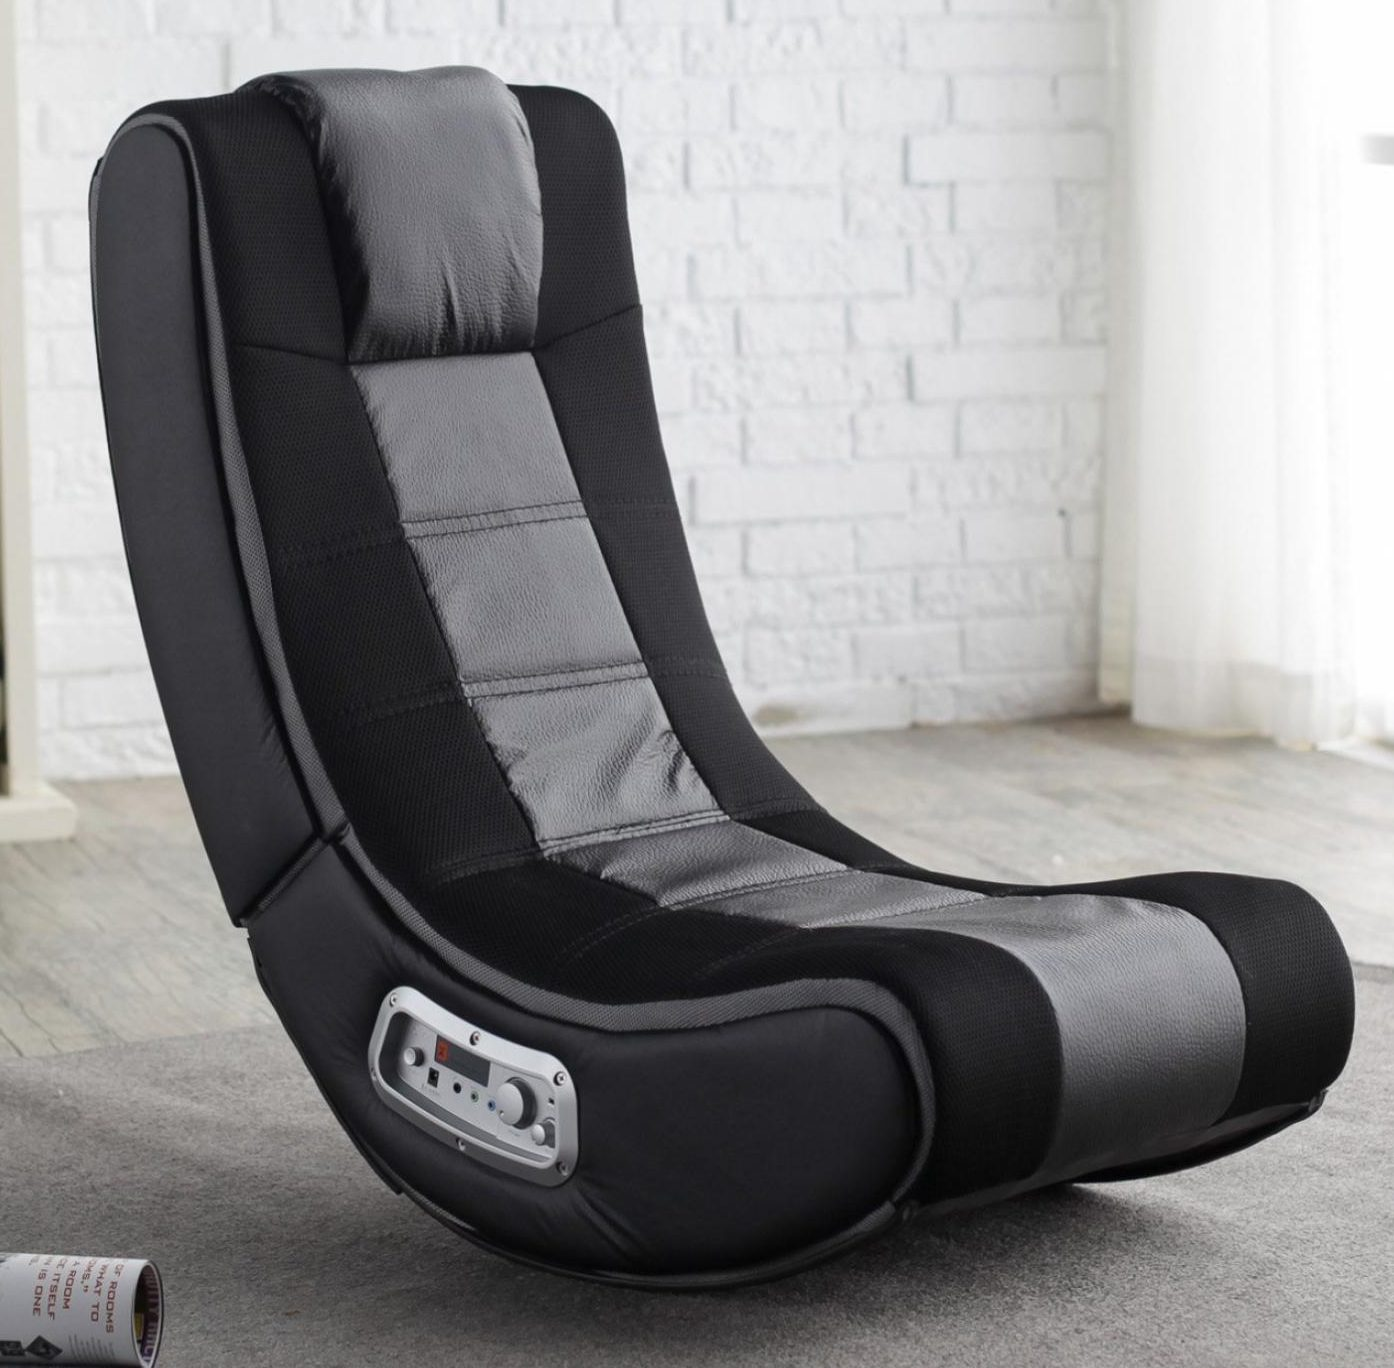 best gaming chair for ps4 universal wedding covers video lazyop